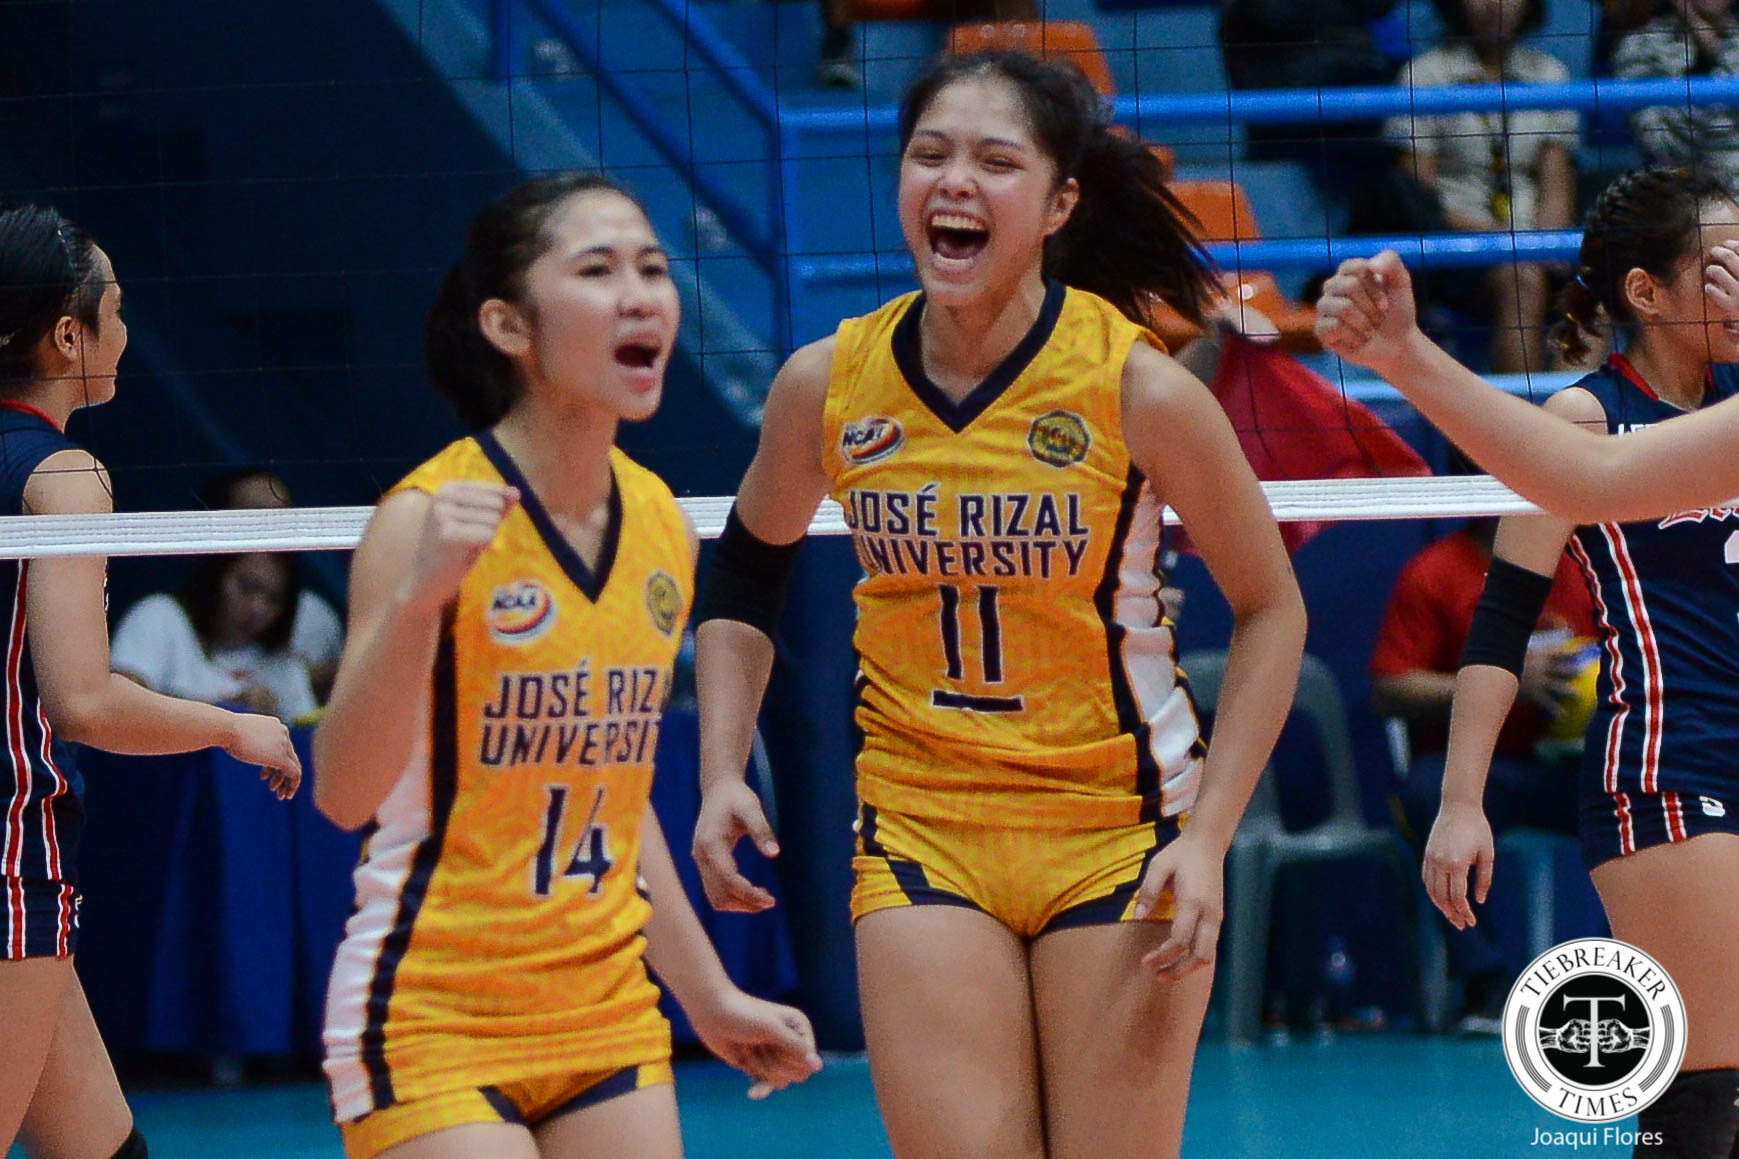 Tiebreaker Times Arellano Lady Chiefs core, Shola Alvarez join Tacloban in PVL News PVL Volleyball  Vira Guillema Tacloban Fighting Warays Shola Alvarez Seth Rodriguez Regine Arocha Patcharee Sangmuang Nes Pamilar Mary Anne Esguerra Kyle Negrito Judith Abil Jovielyn Prado Eunice Galang 2018 PVL Season 2018 PVL Reinforced Conference